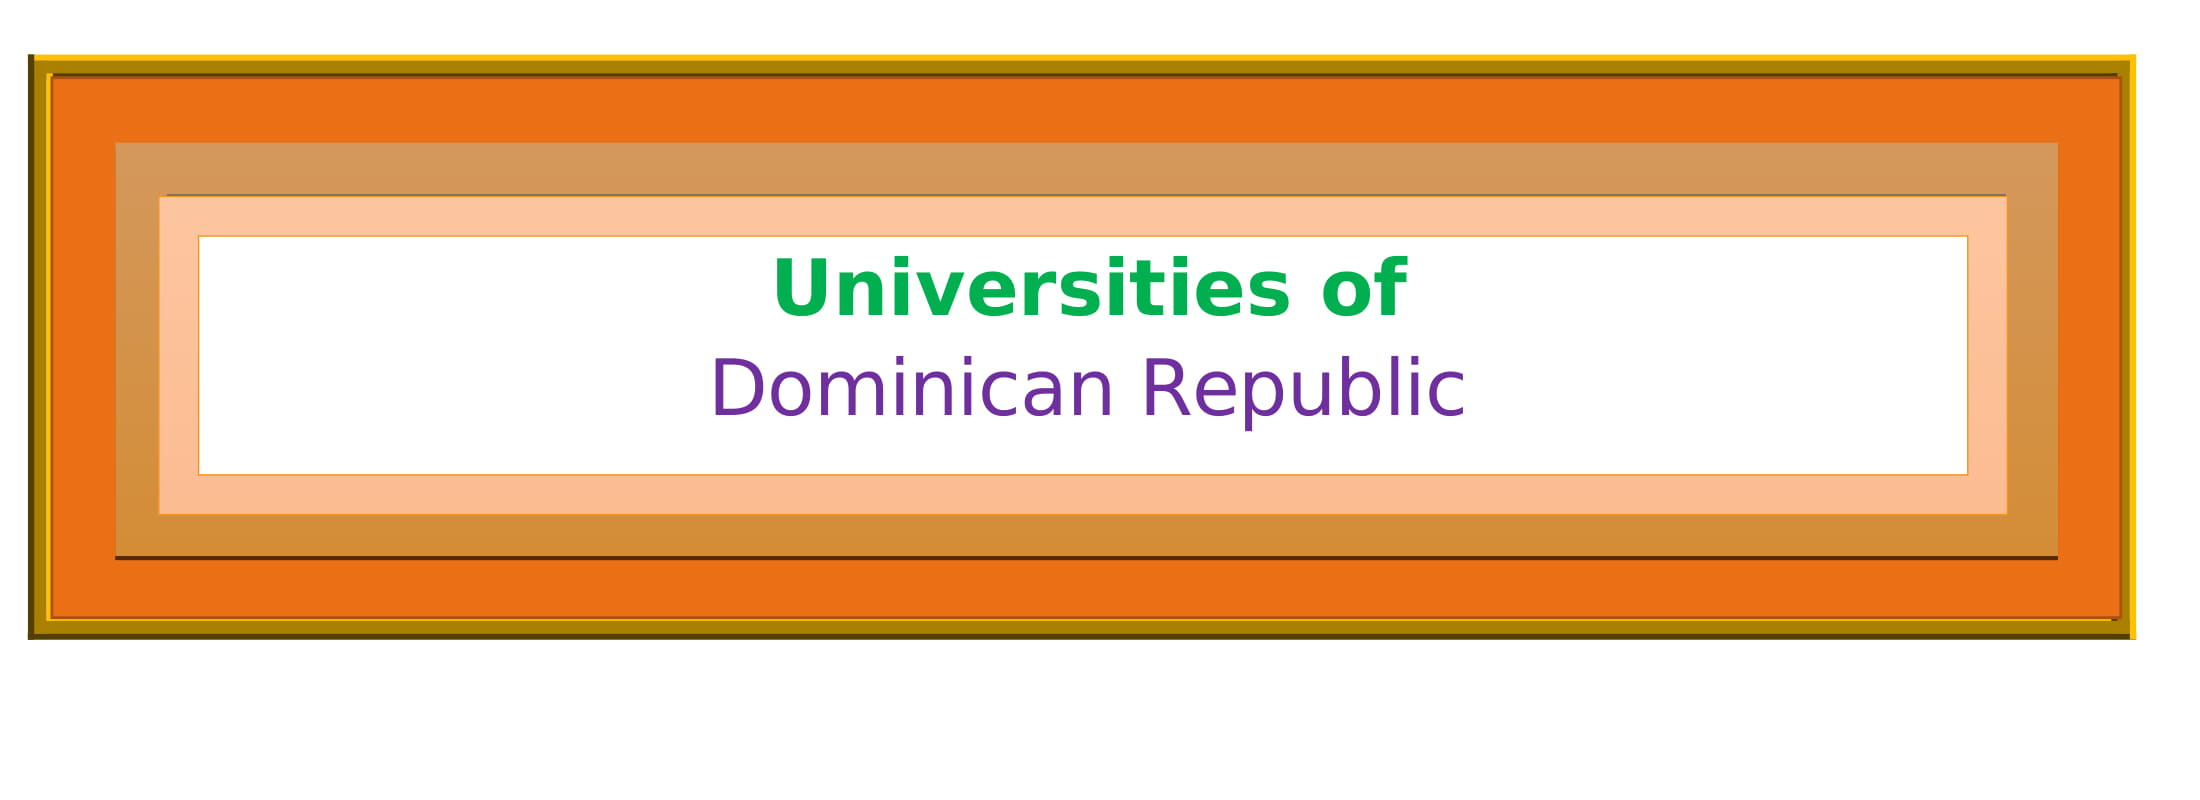 List of Universities in Dominican Republic